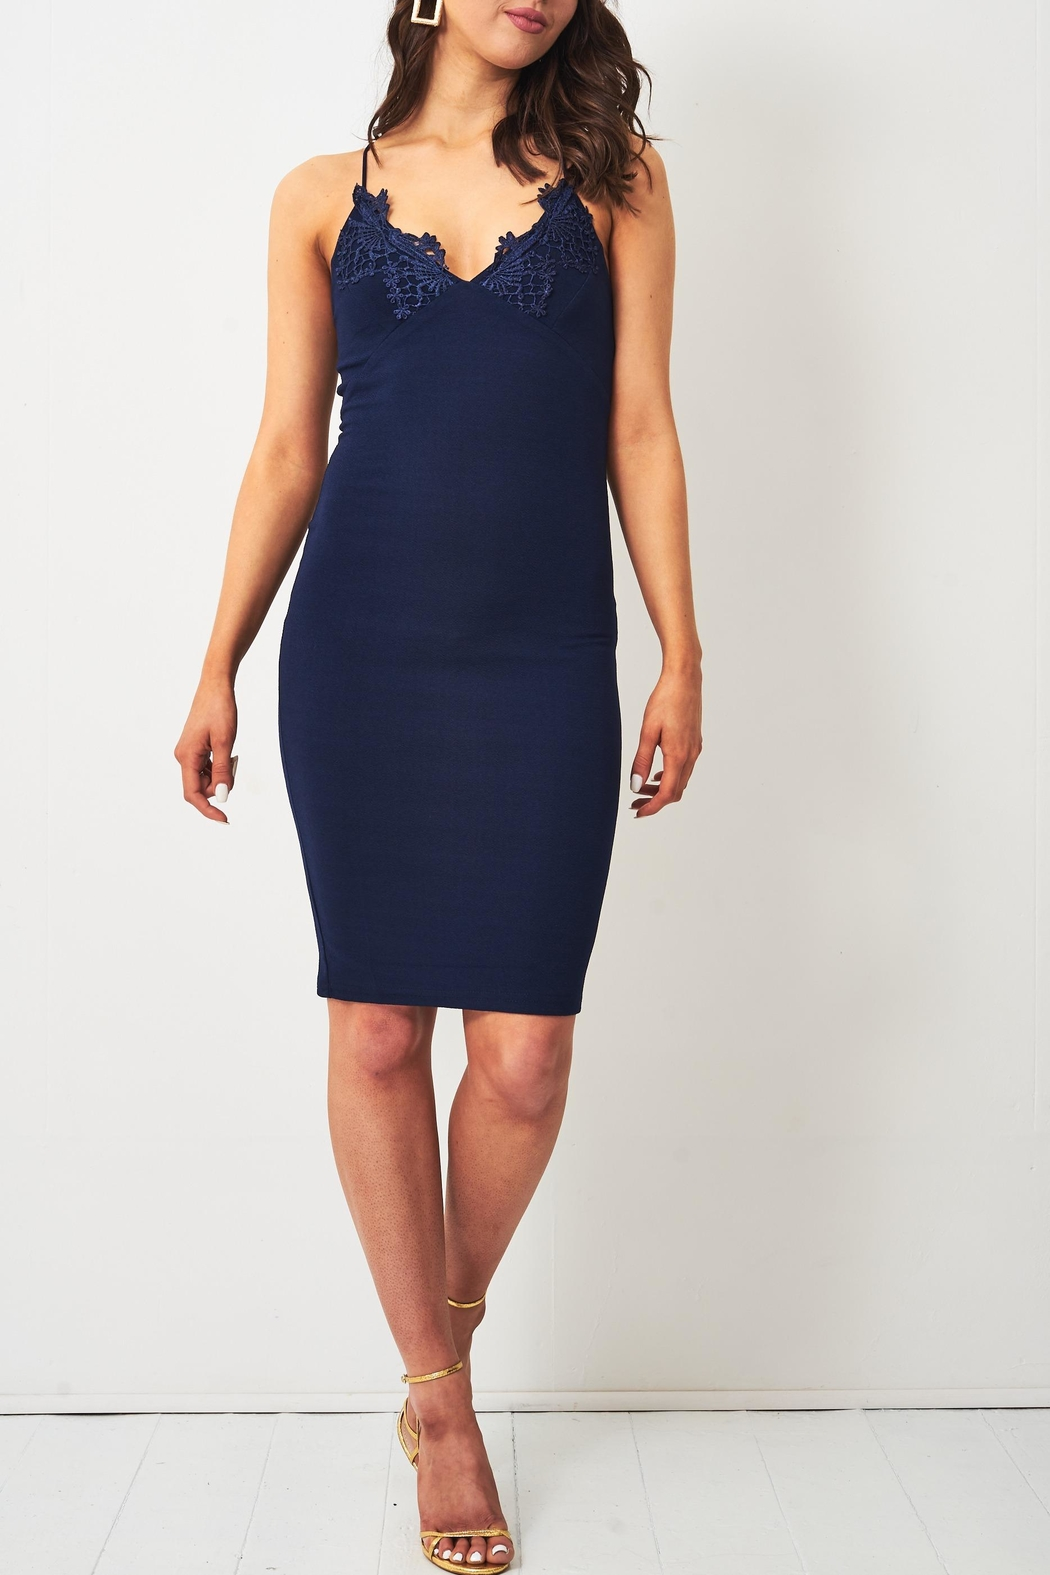 frontrow Navy Lace-Applique Dress - Main Image